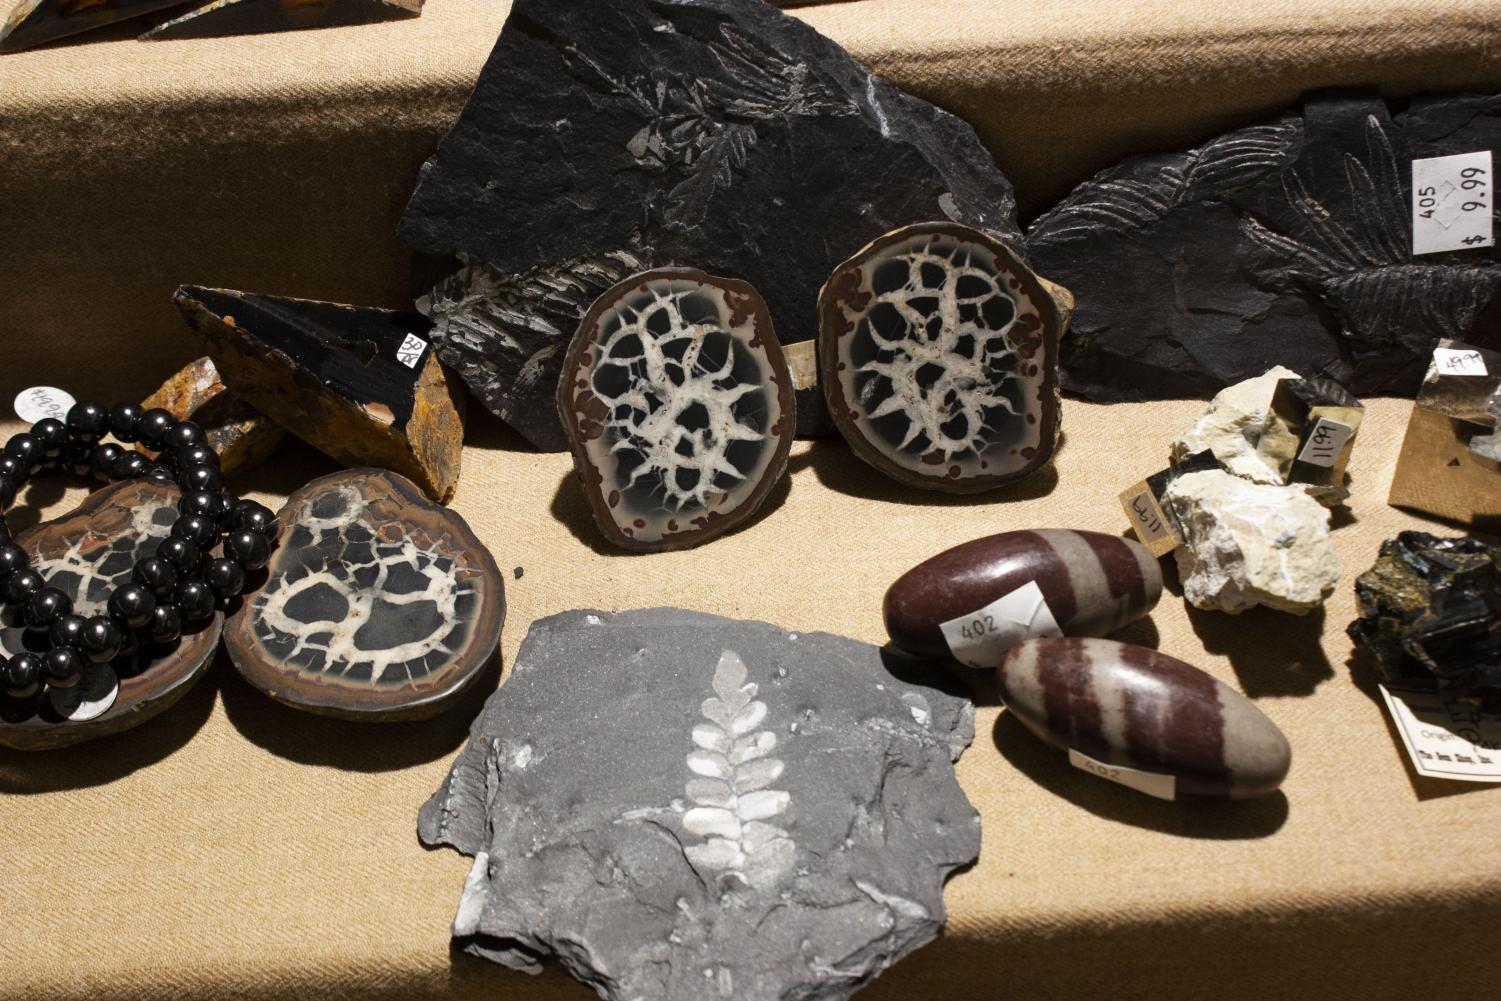 Among+The+Gem+Shop+Inc%E2%80%99s+display+were+meteorites+from+Argentina.